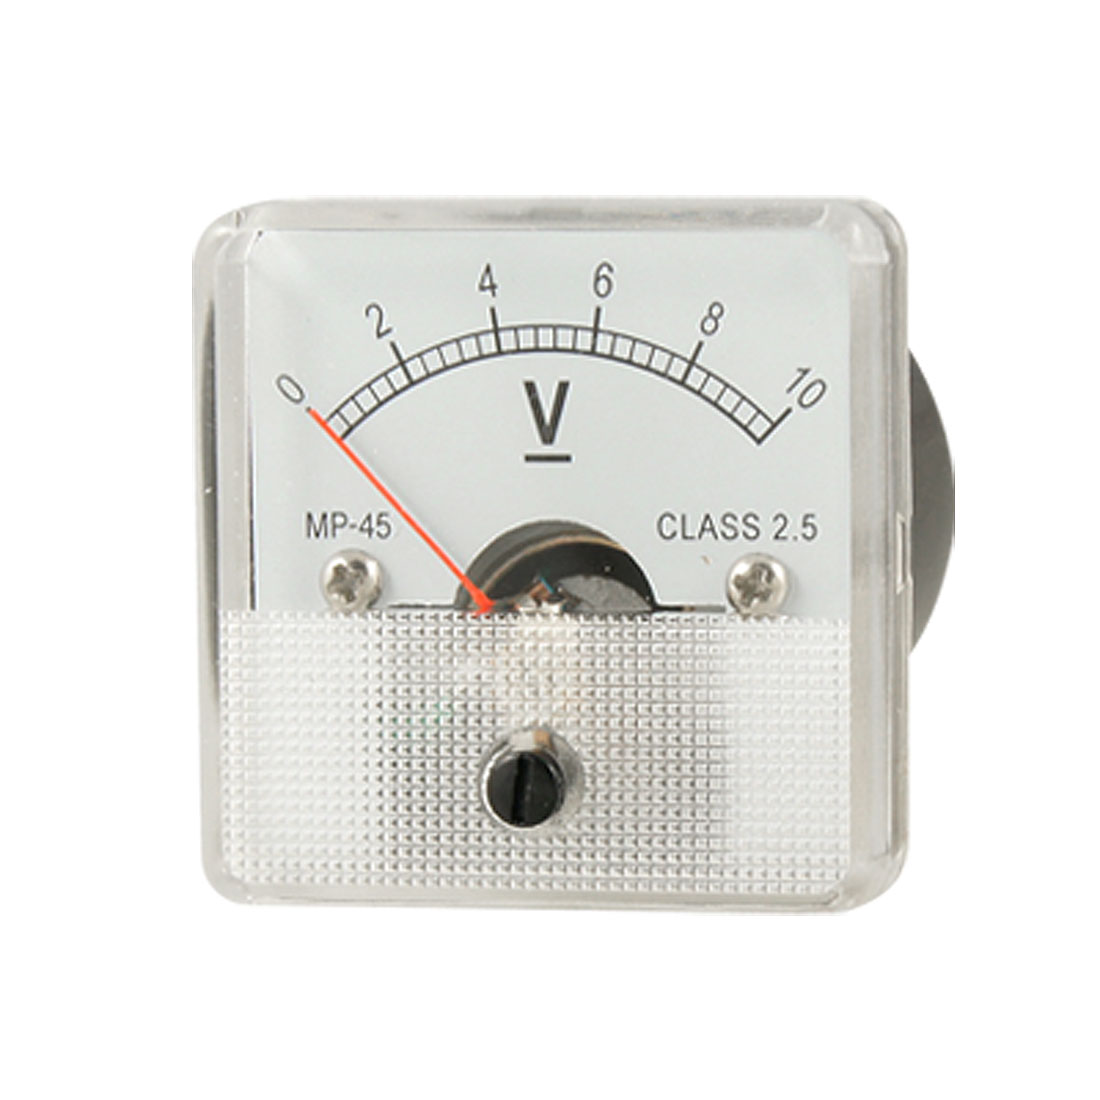 DC 0-10V Voltmeter Class 2.5 Analog Voltage Panel Meter